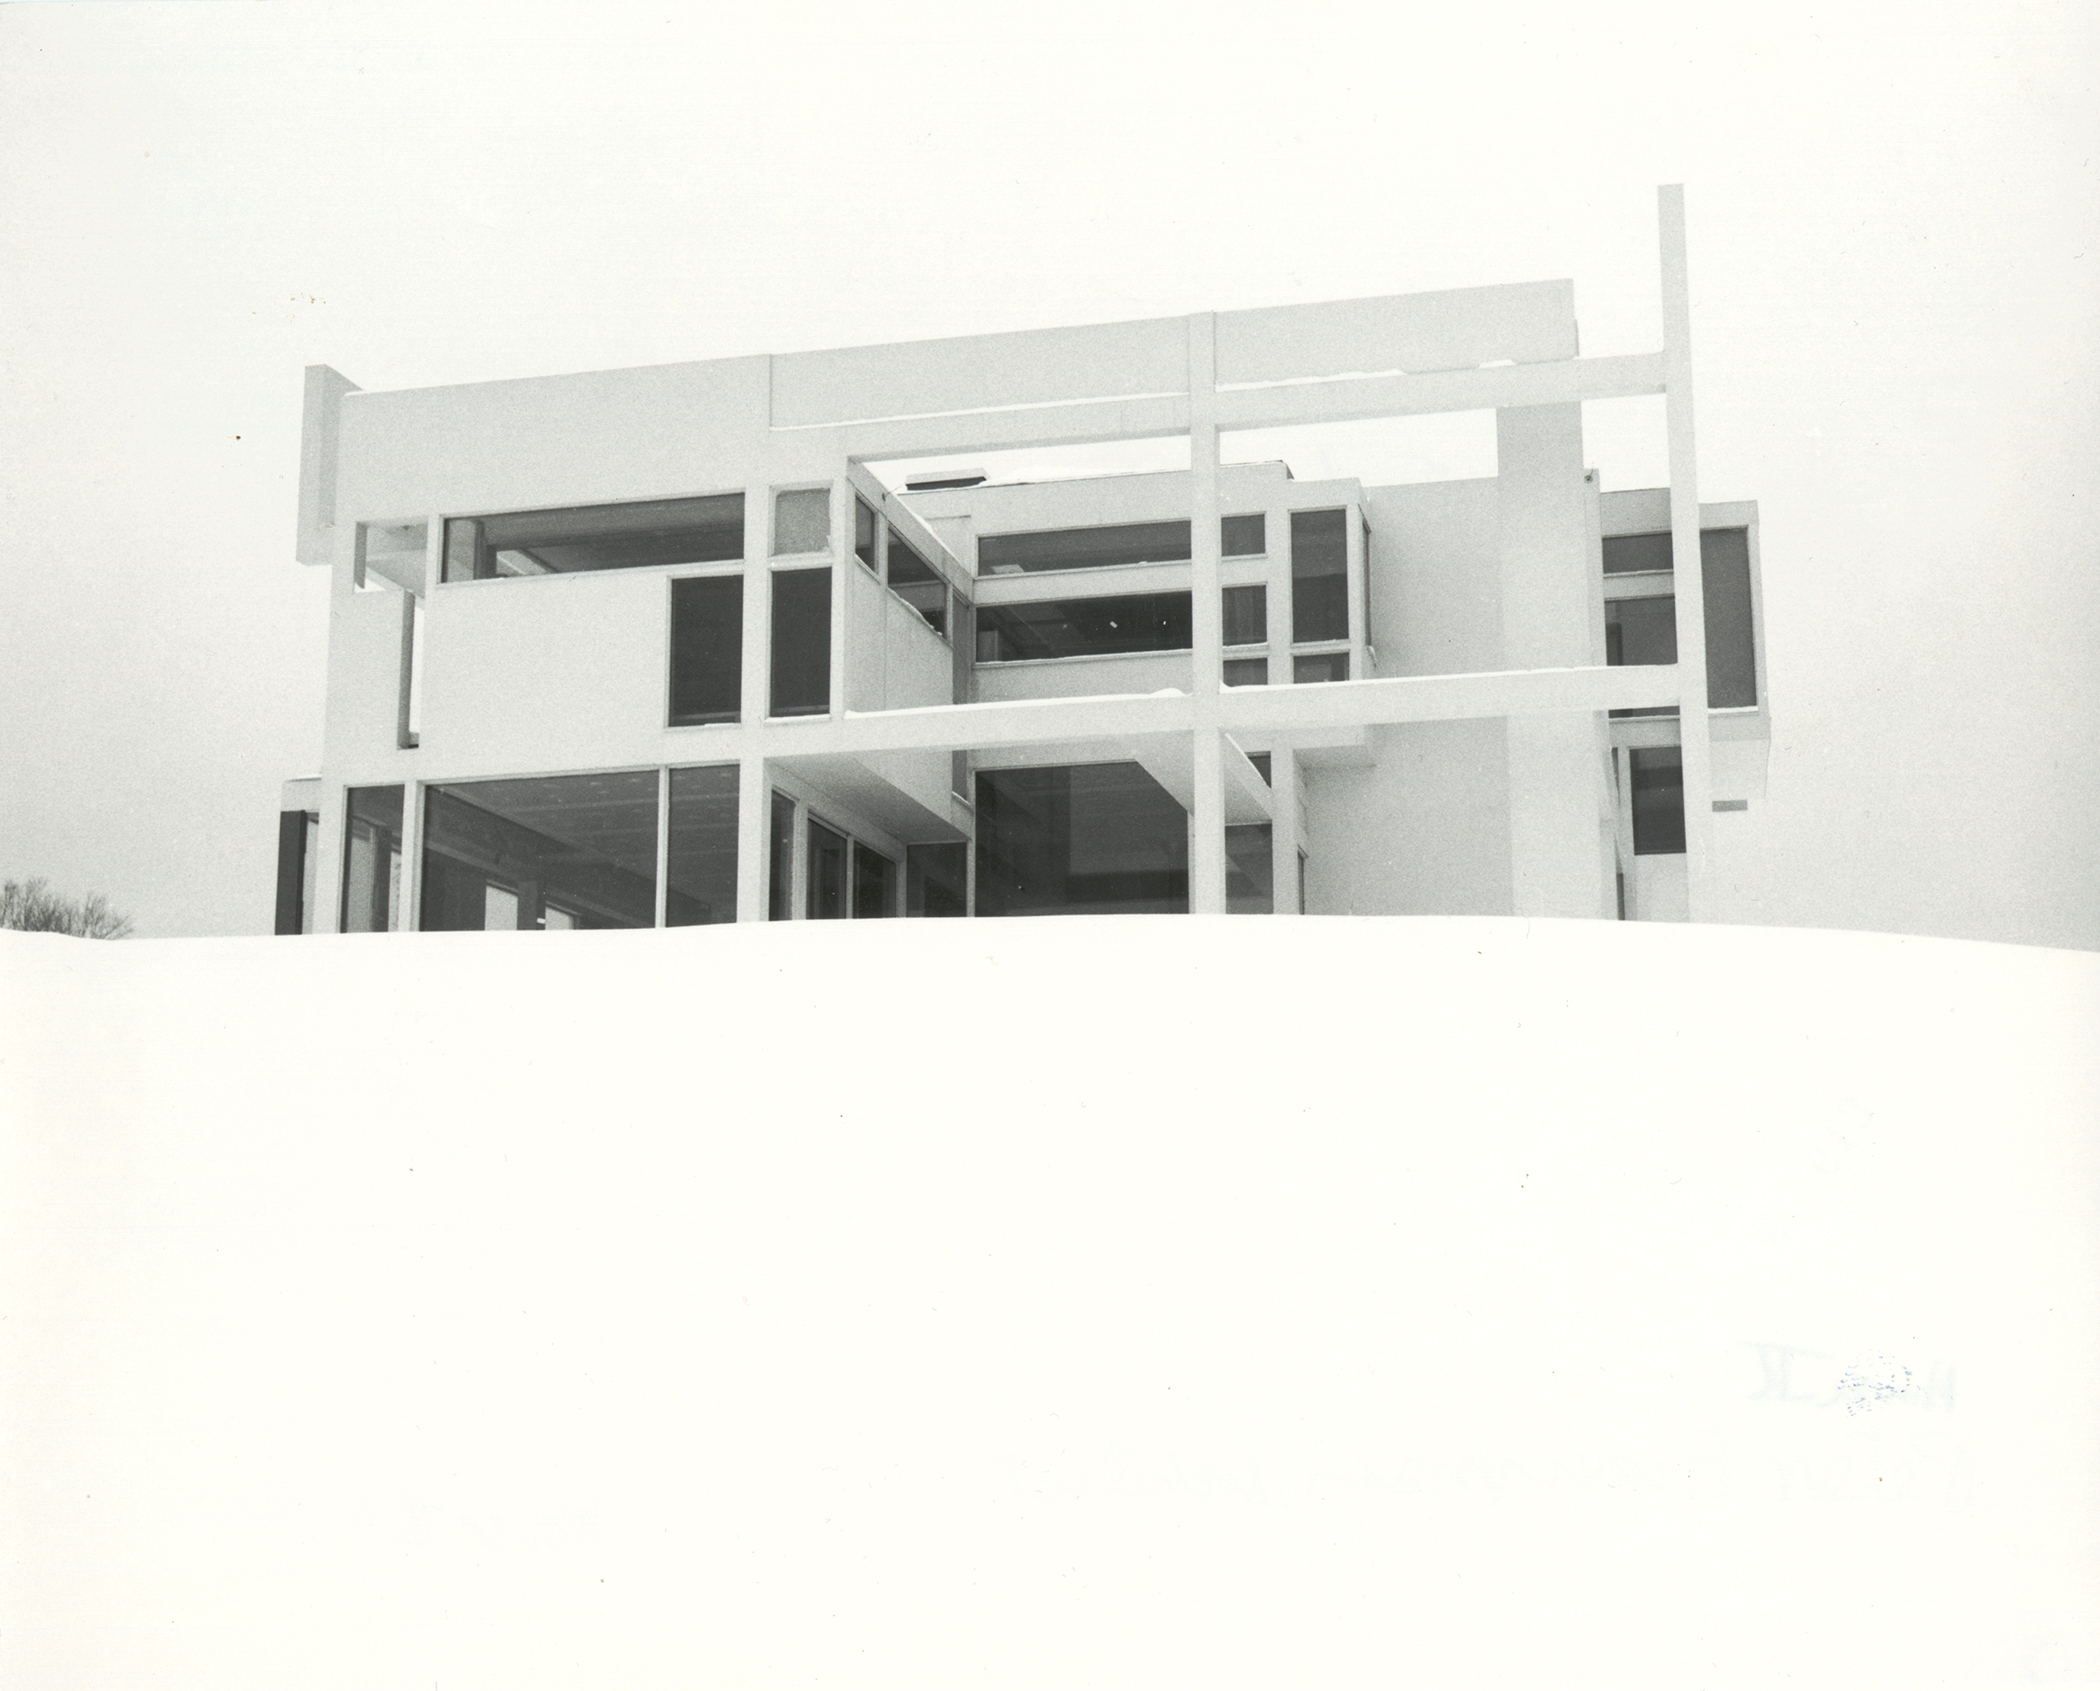 A photograph of House II was mistaken for a model by a French magazine.